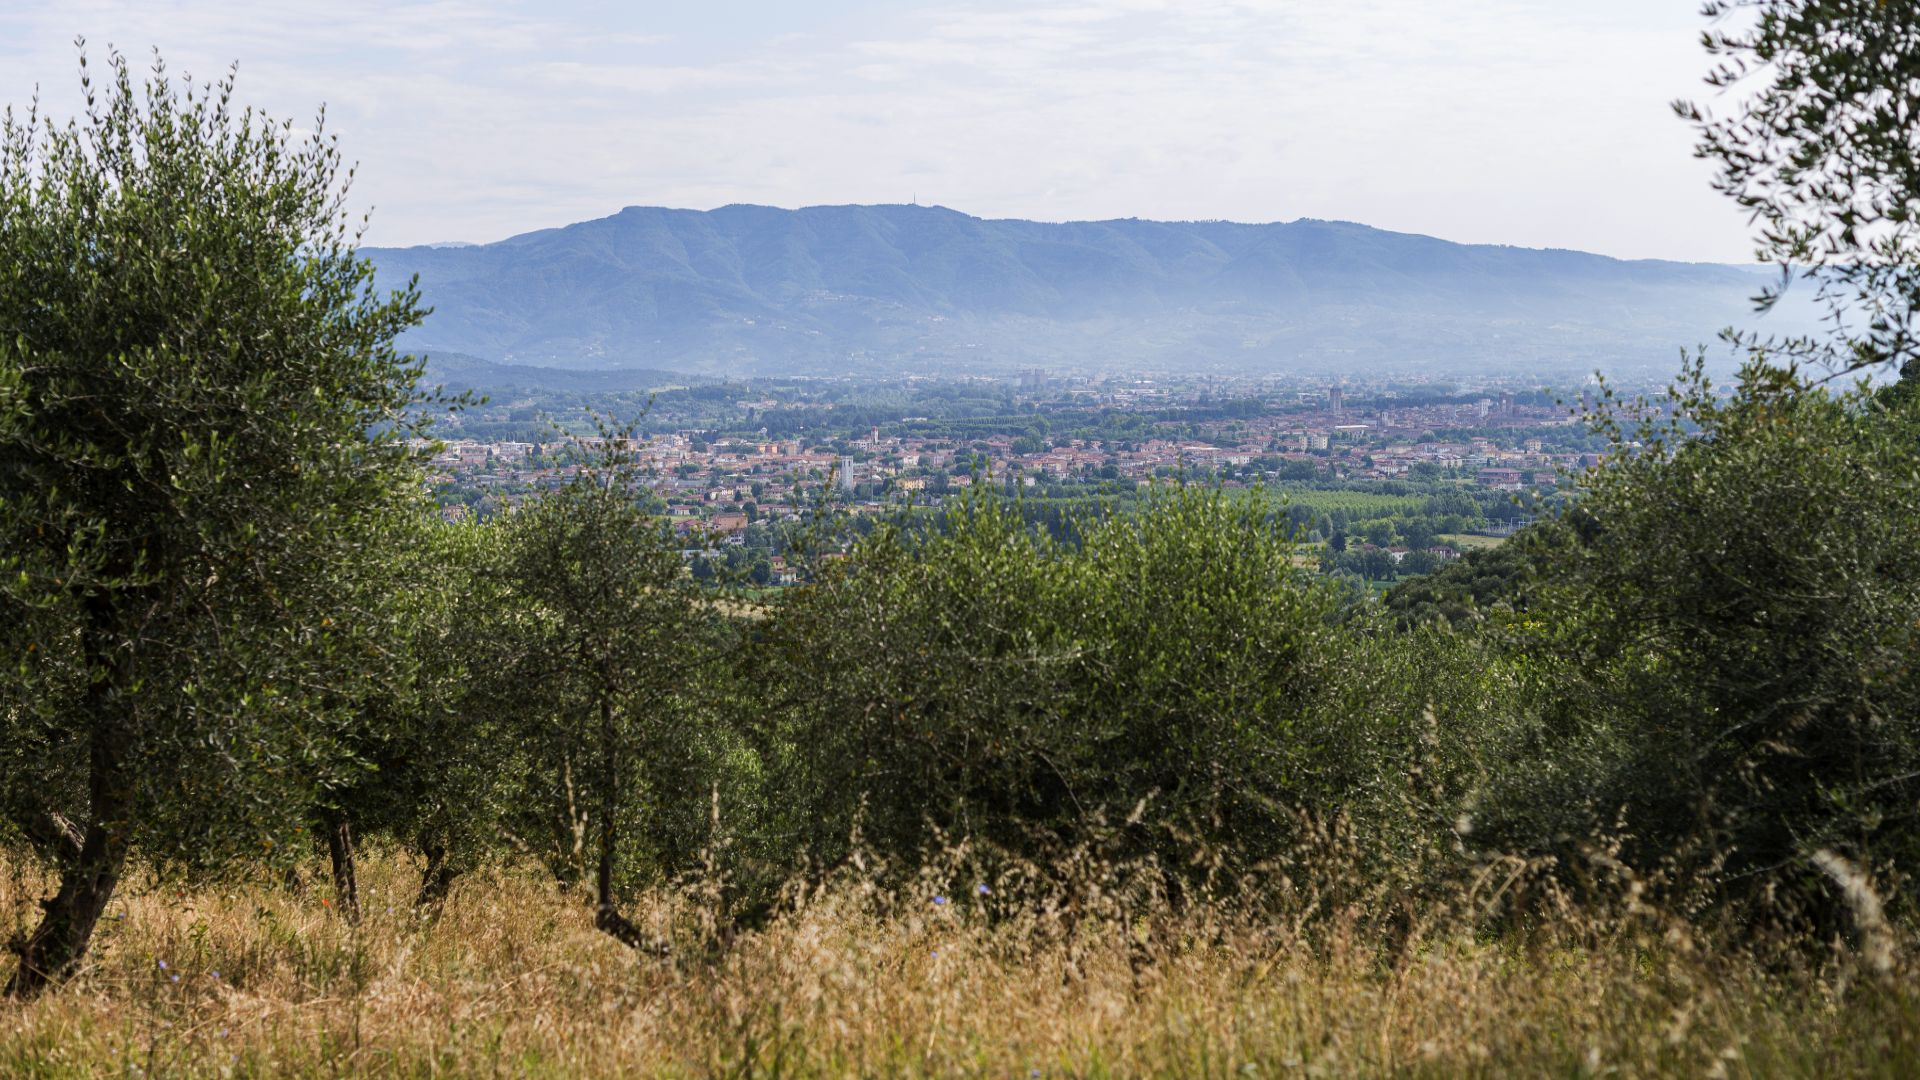 panorama of the plain of Lucca from the Pizzorne plateau